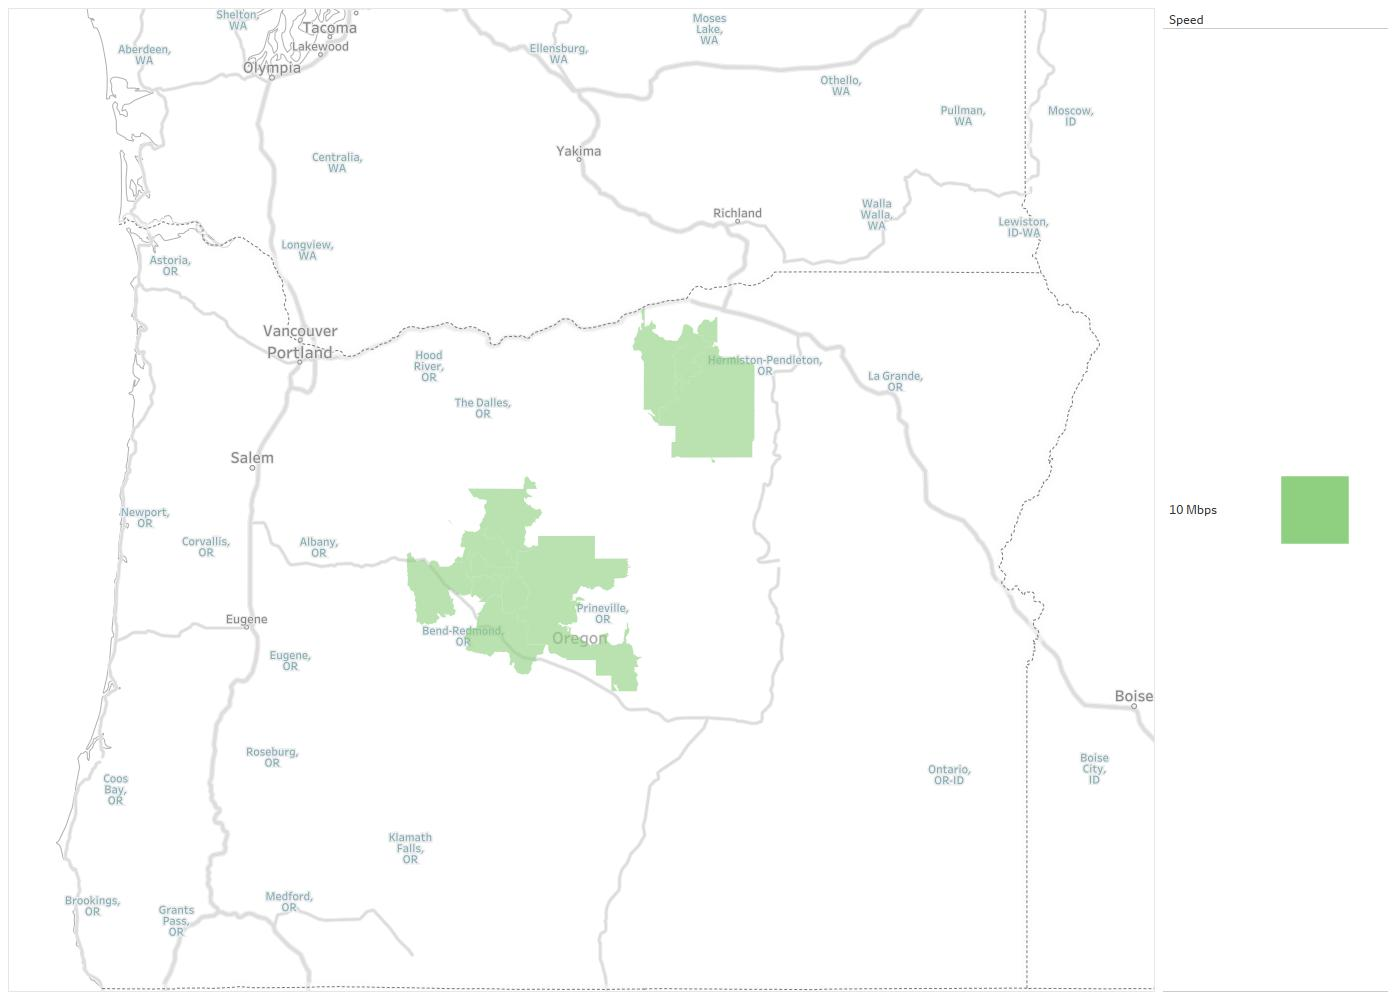 Redmond Zip Code Map.Prinetime Internet Solutions Availability Areas Coverage Map